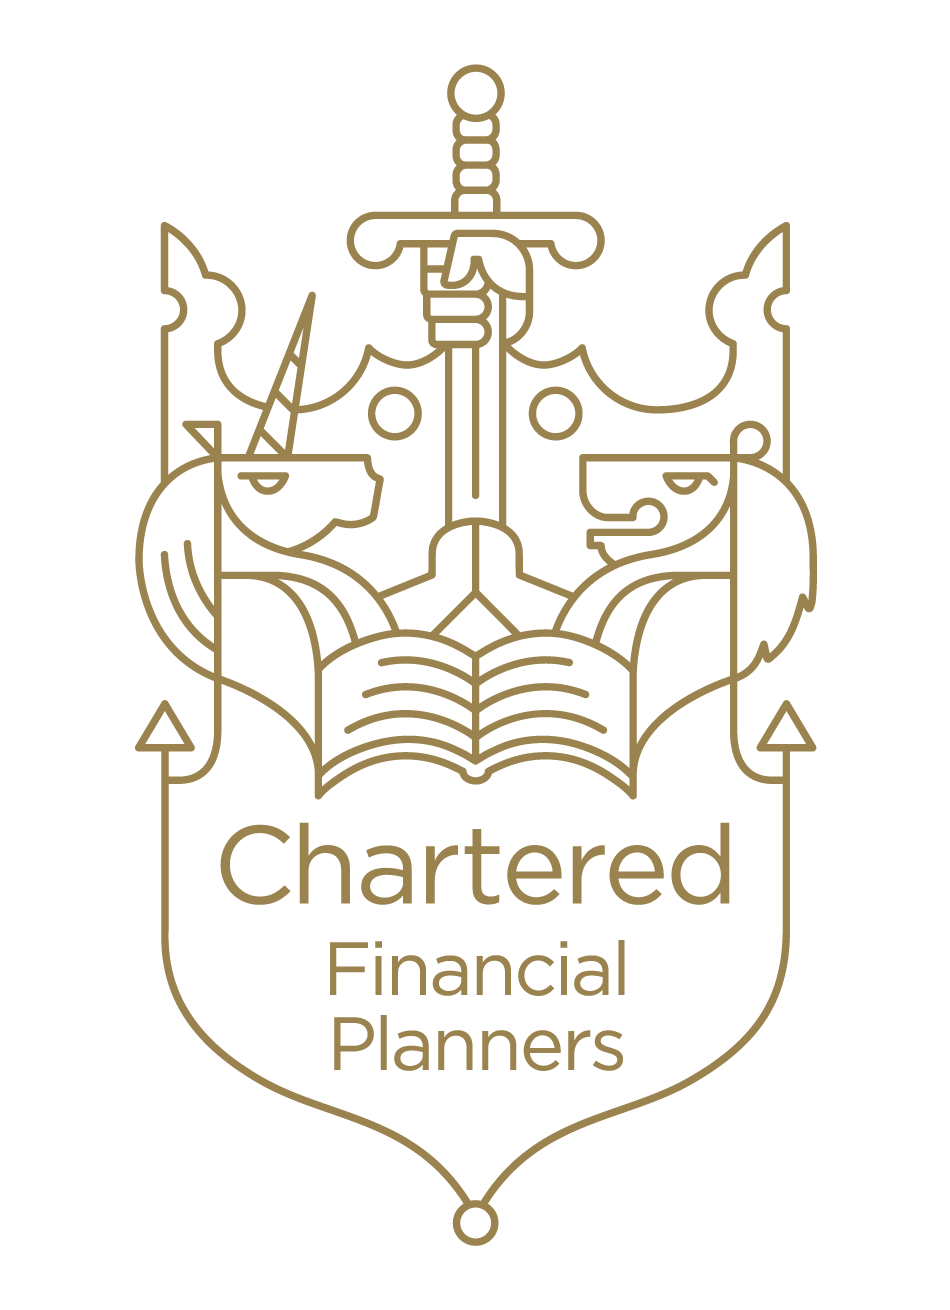 The logo of the Financial Planners Chartered division of the CII